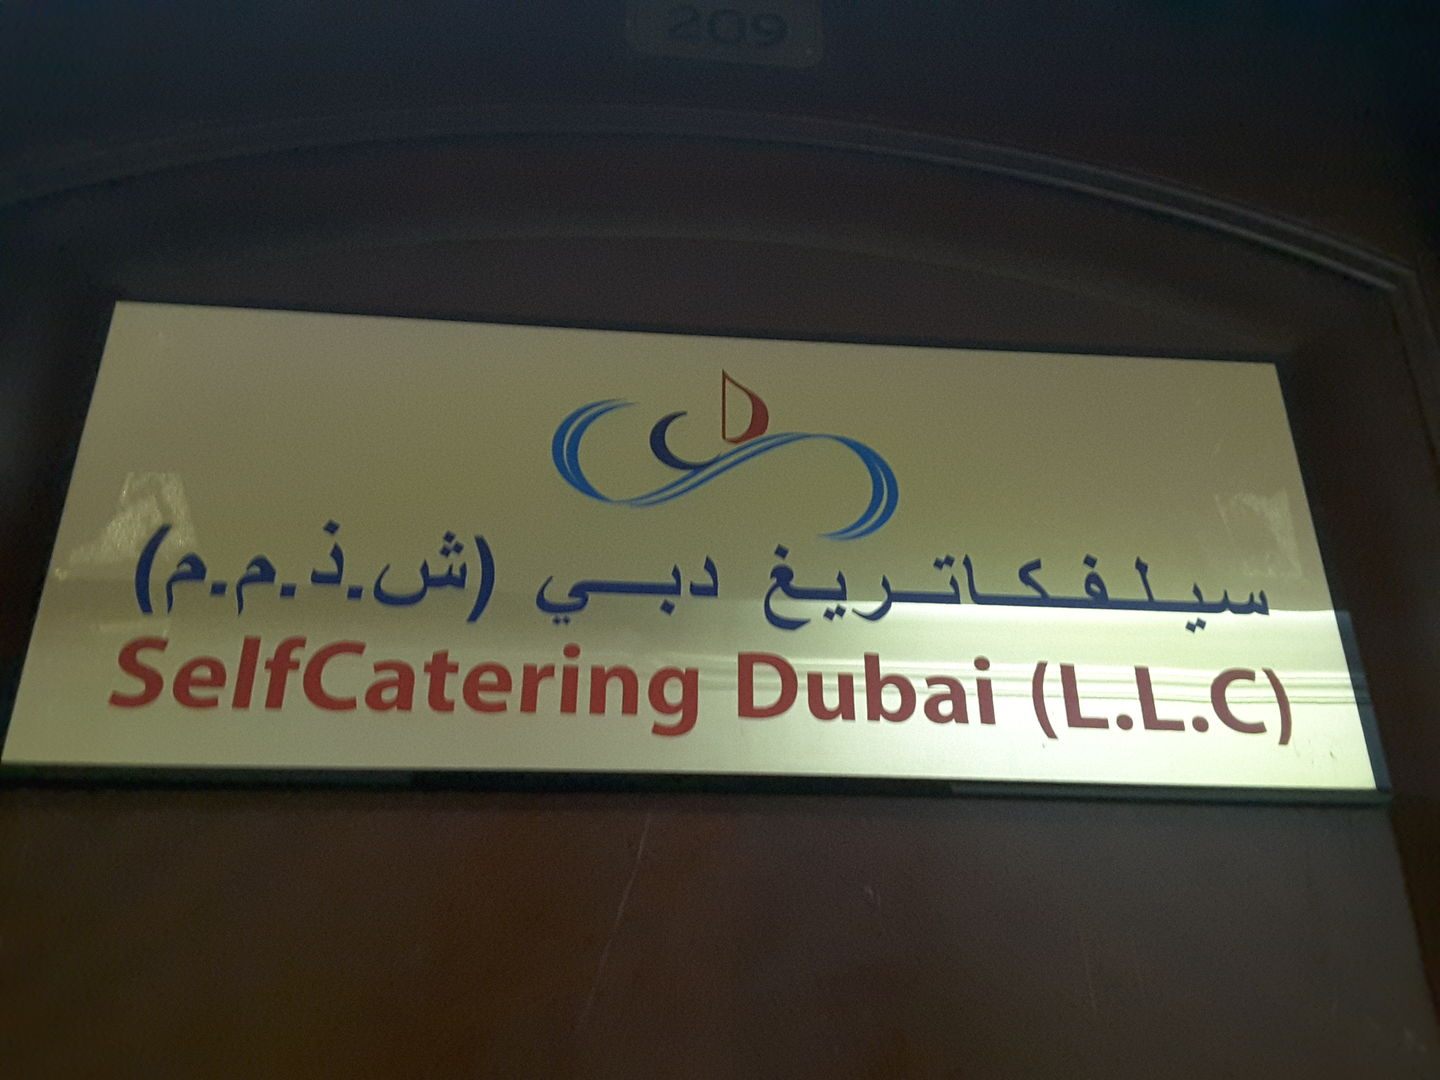 HiDubai-business-self-catering-dubai-hotels-tourism-local-tours-activities-al-raffa-al-raffa-dubai-2